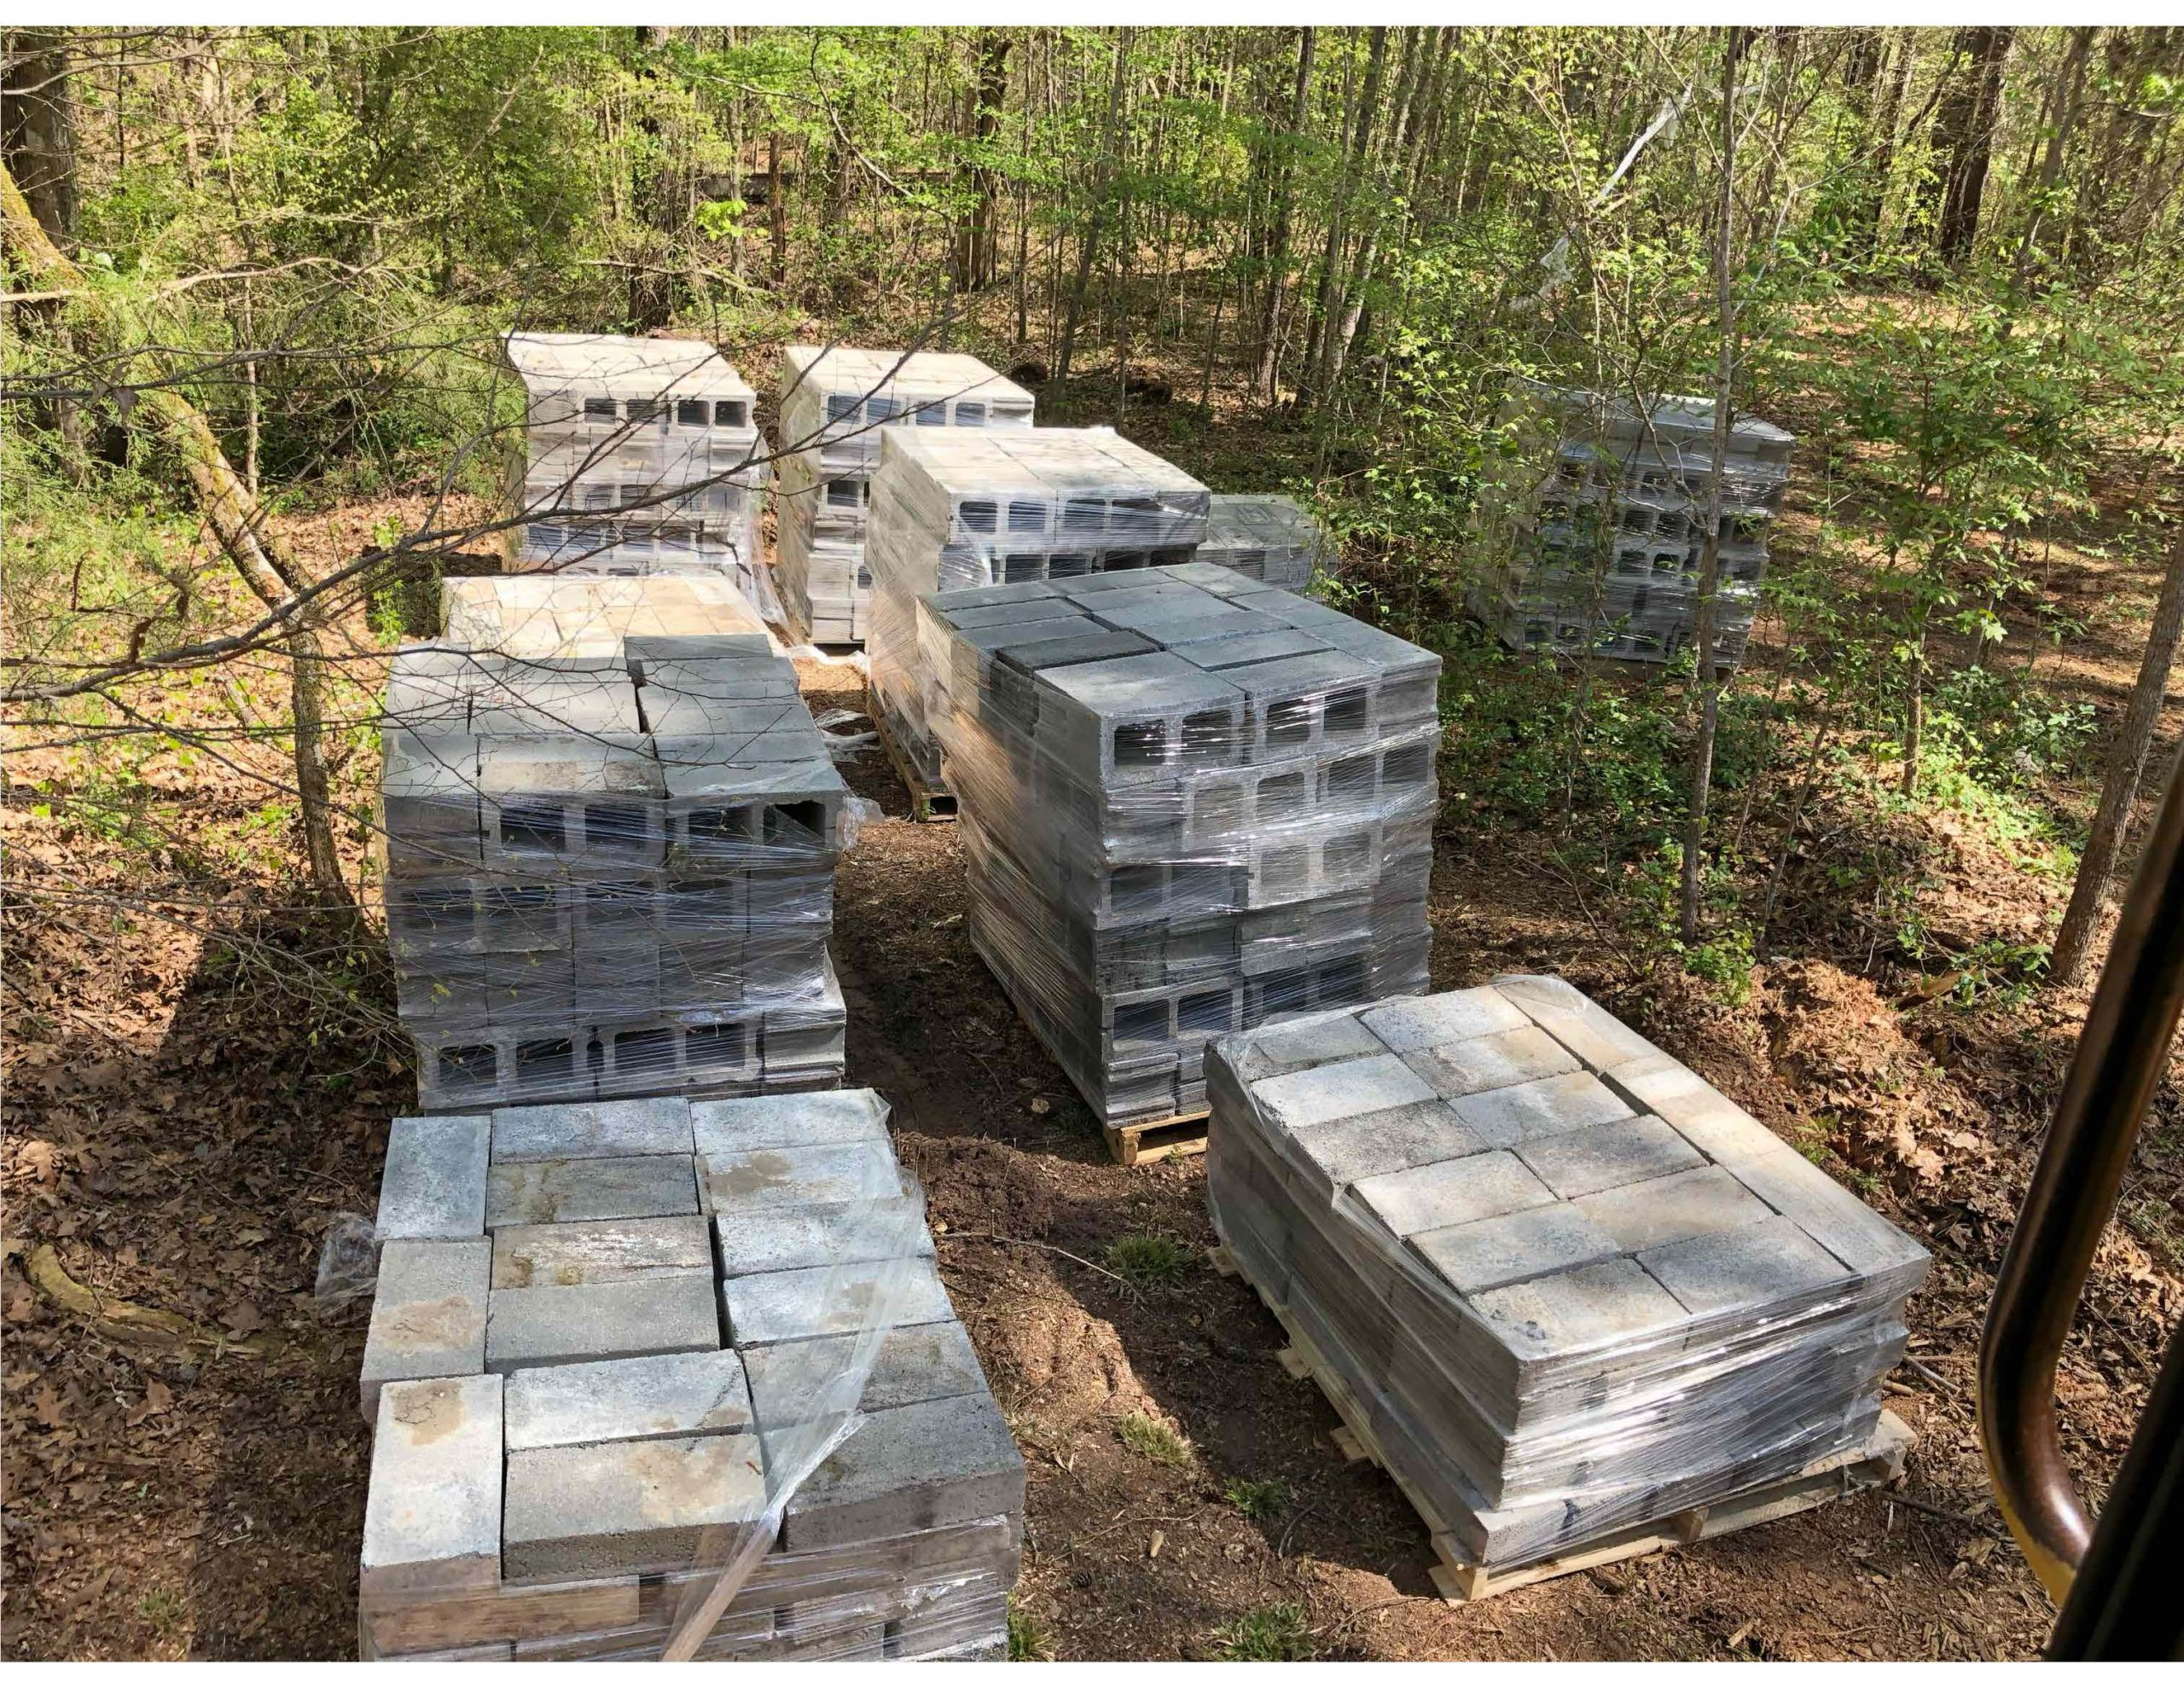 Pallets of blocks and bricks for donation